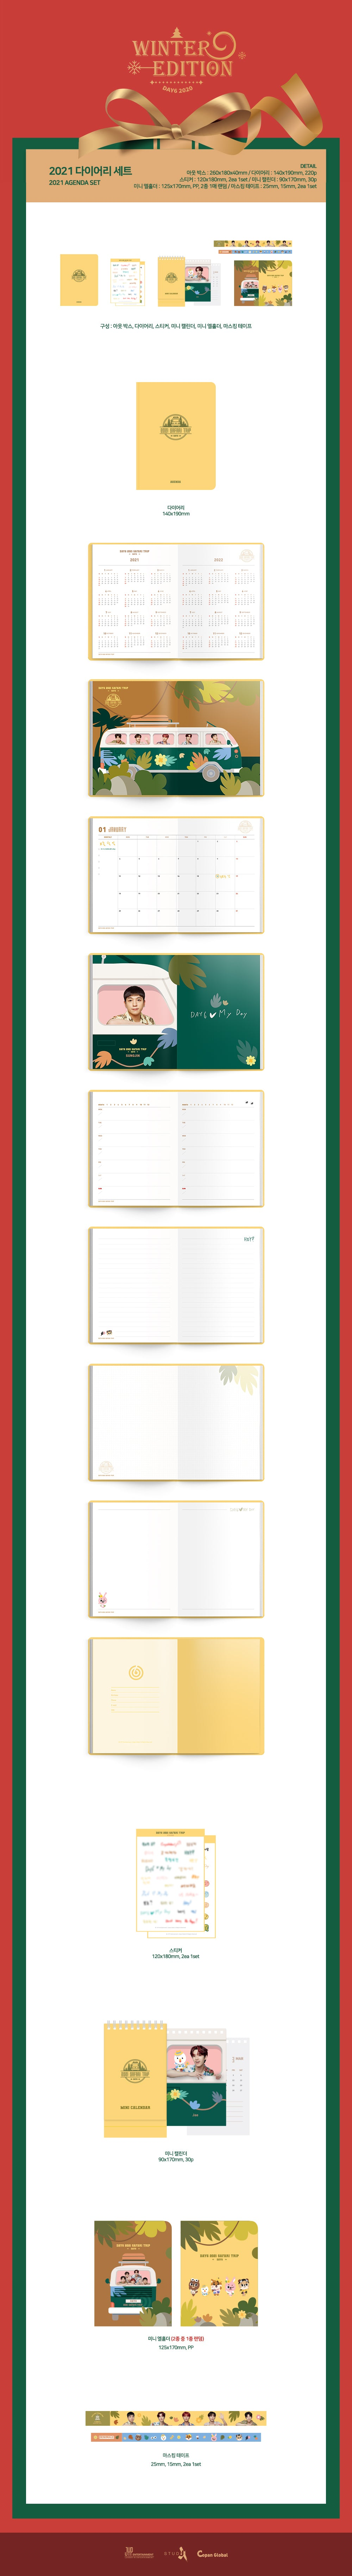 DAY6 2021 Diary Set (2020 Winter Edition)